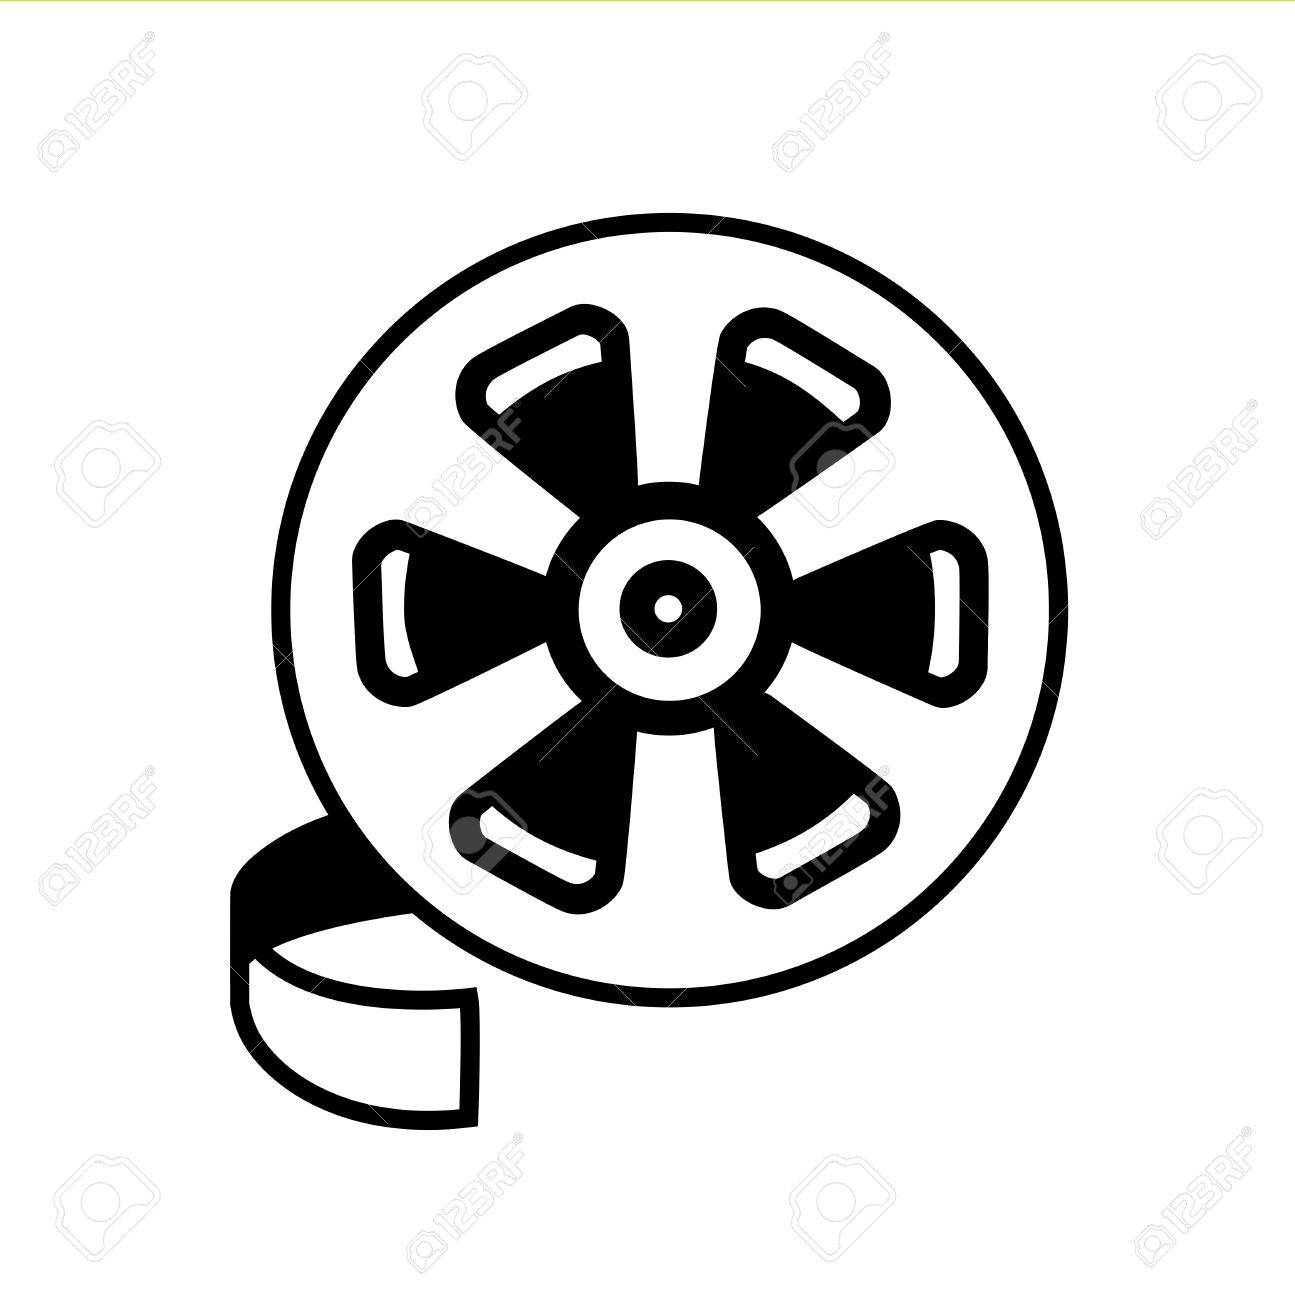 Movie Reel Line Icon Vector Black And White Royalty Free Cliparts